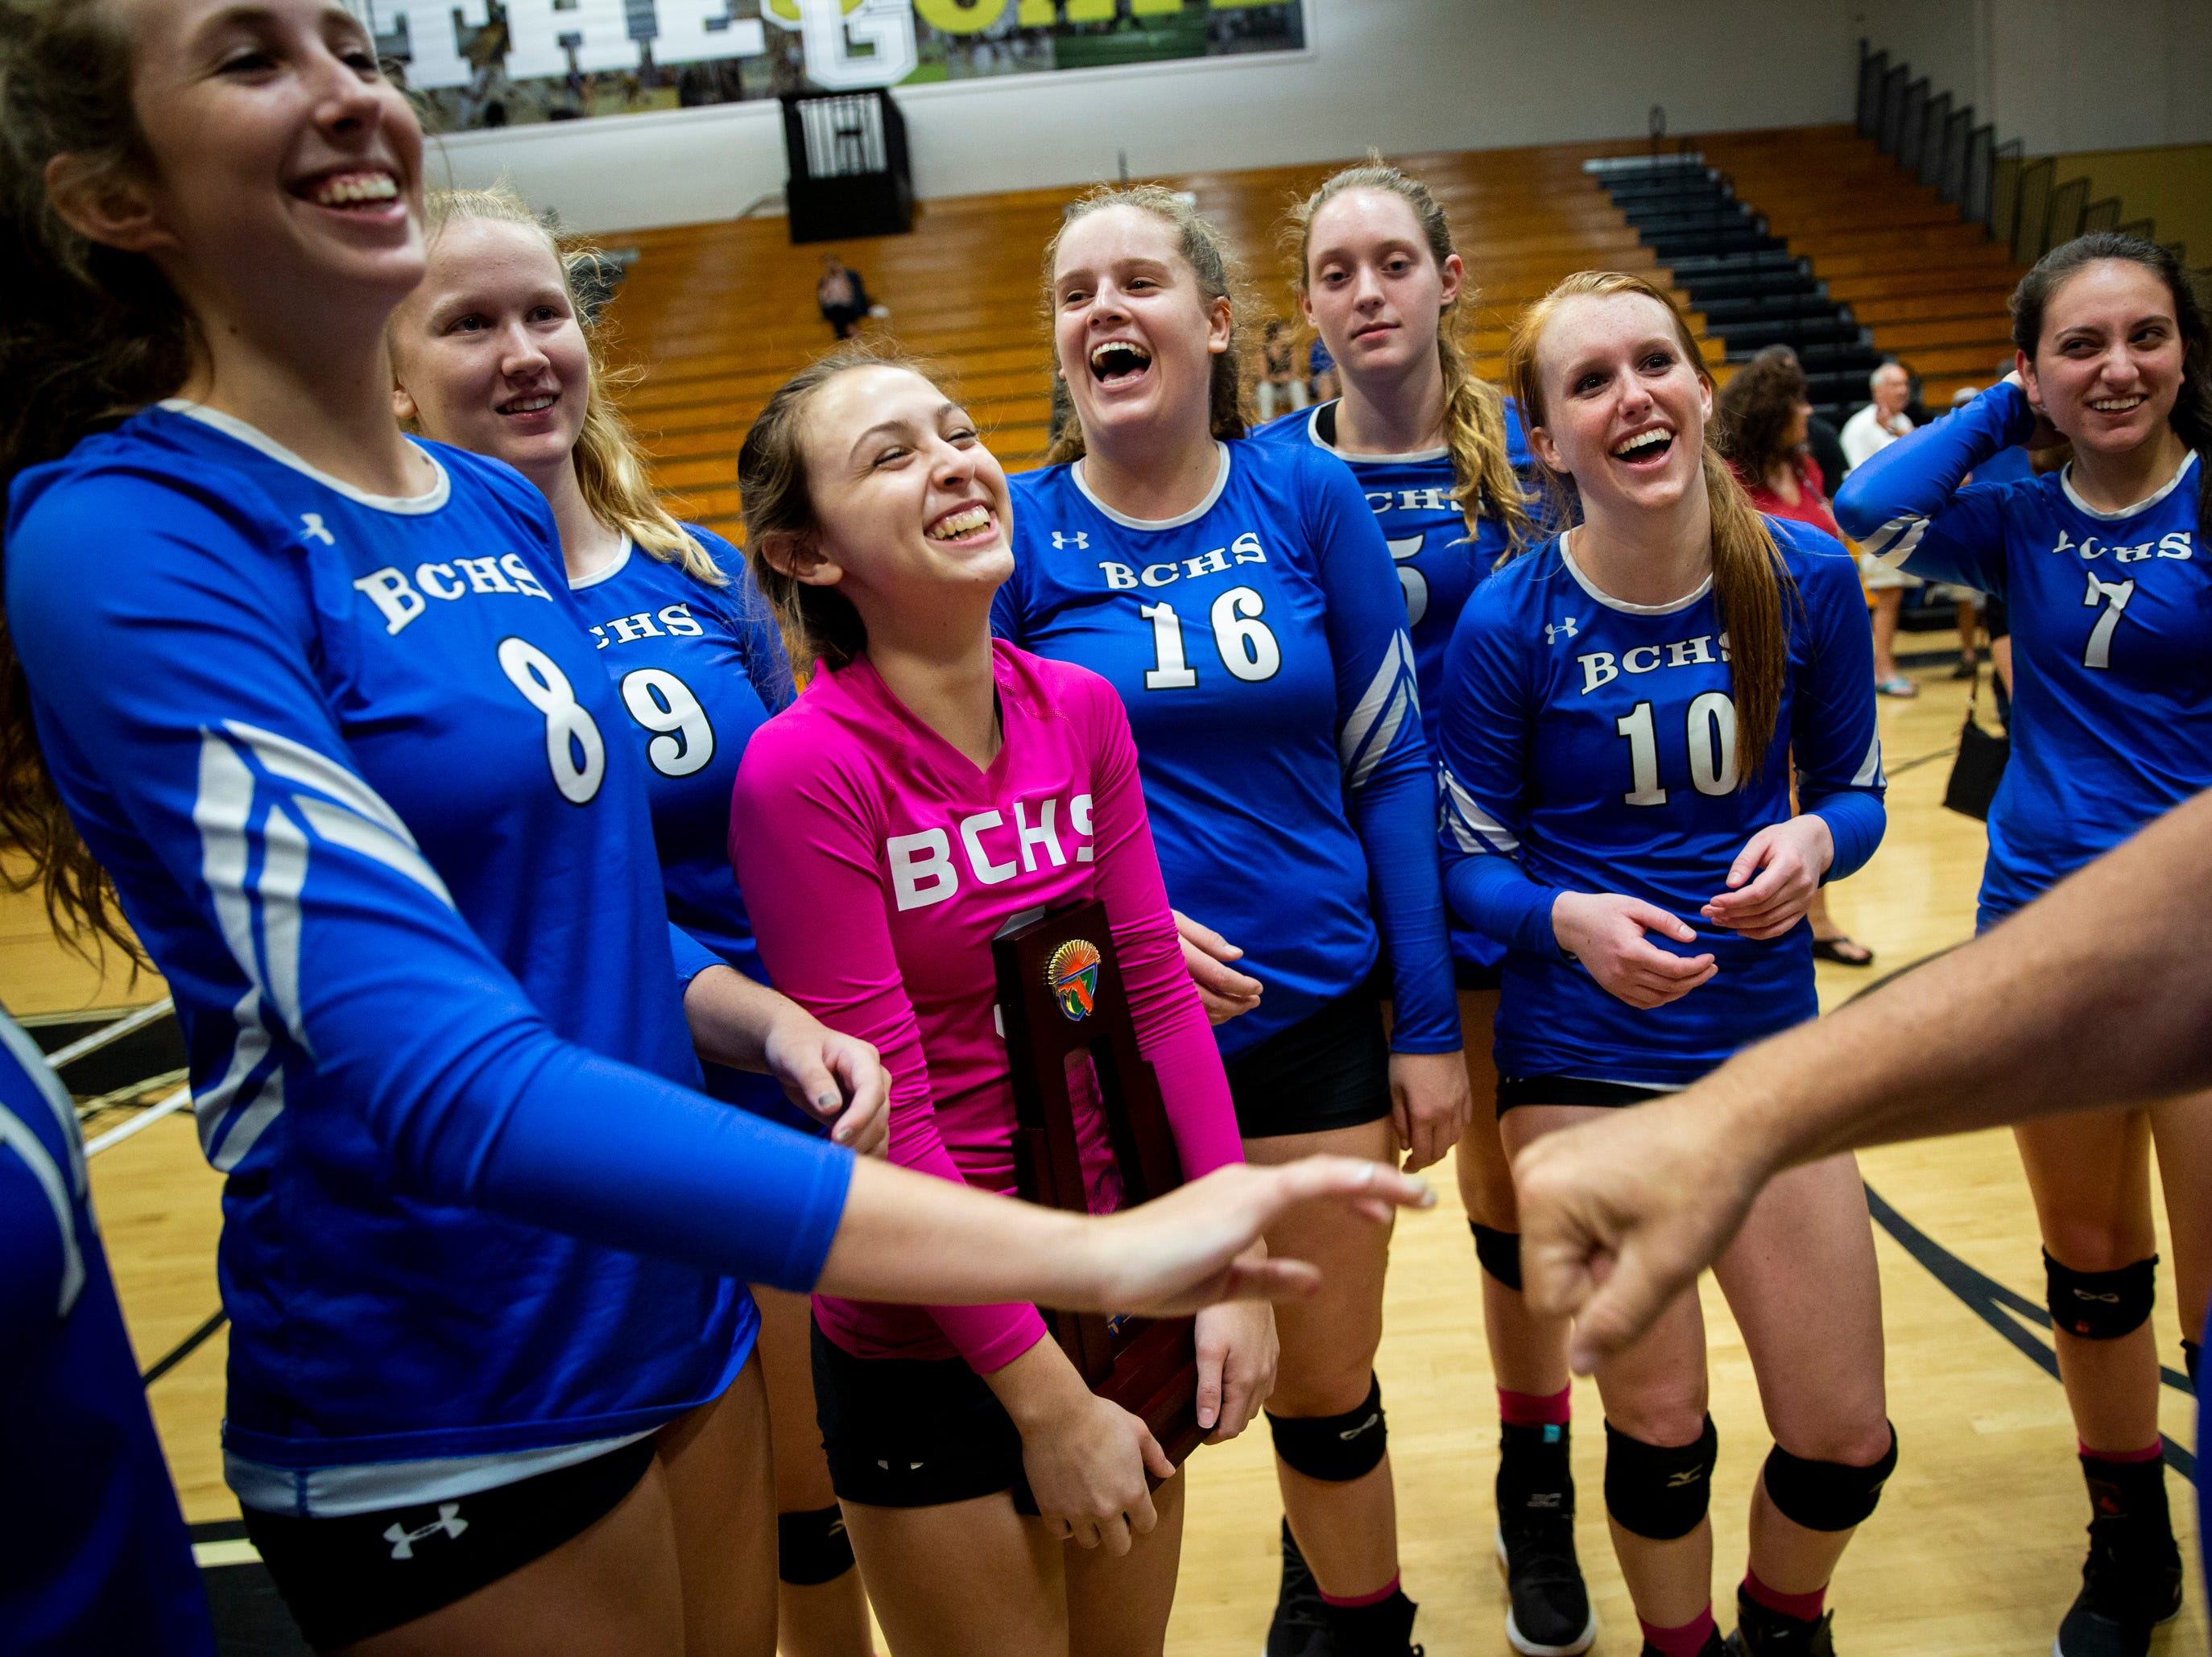 The Barron Collier volleyball team celebrates with activities coordinator Ken Andiorio after sweeping Palmetto Ridge in the Class 7A-District 12 championship volleyball match on Thursday, October 18, 2018, at Golden Gate High School in Naples.